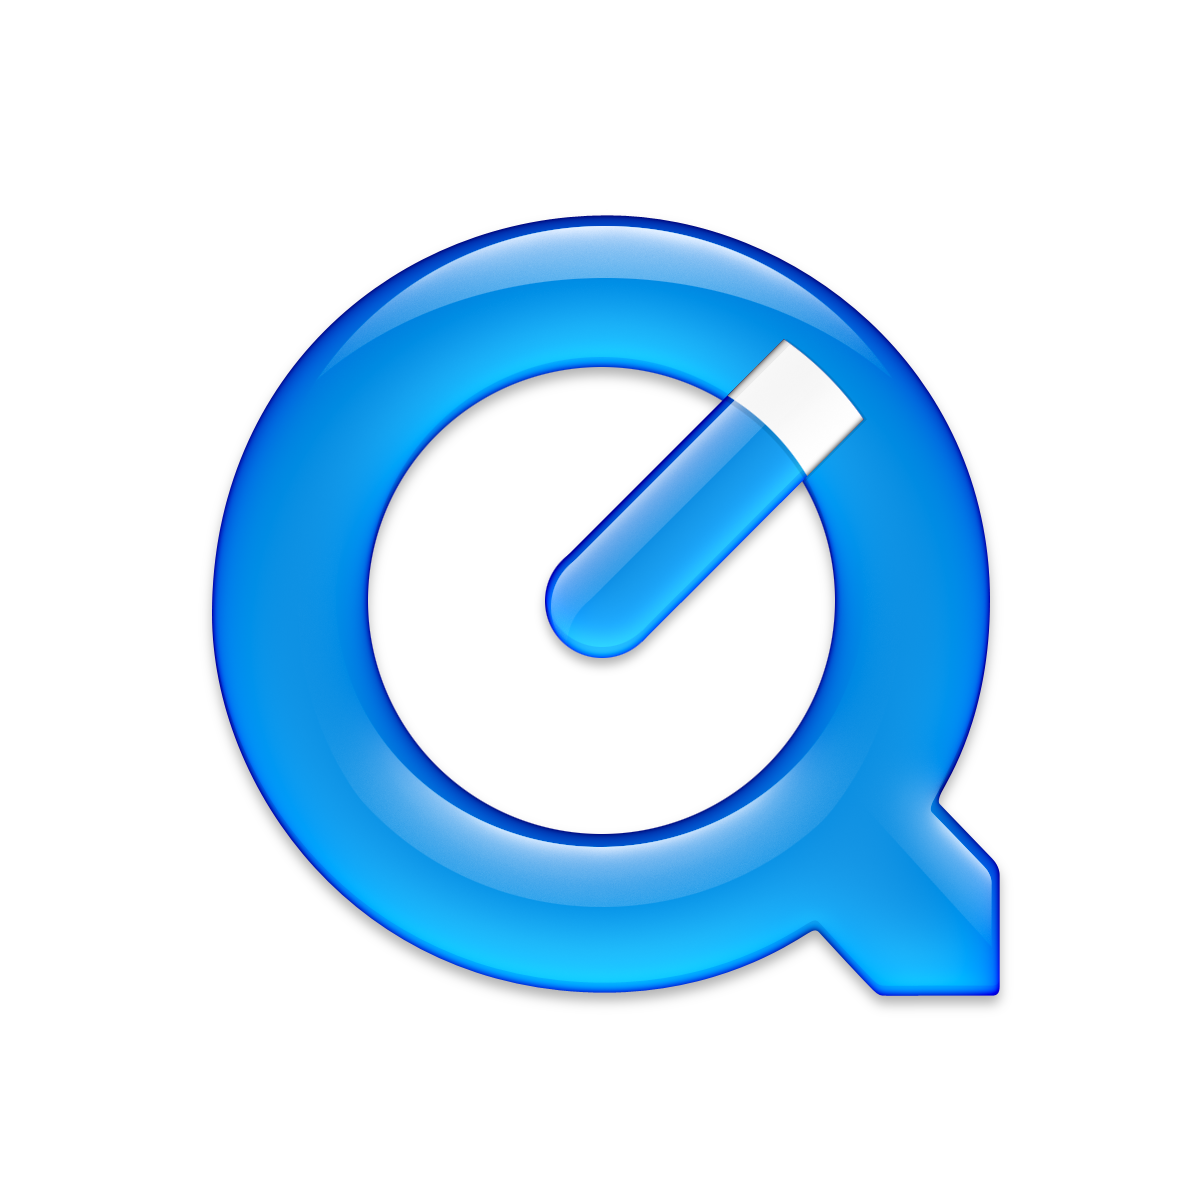 soft-download: QuickTime Player 7.69 ( free software )